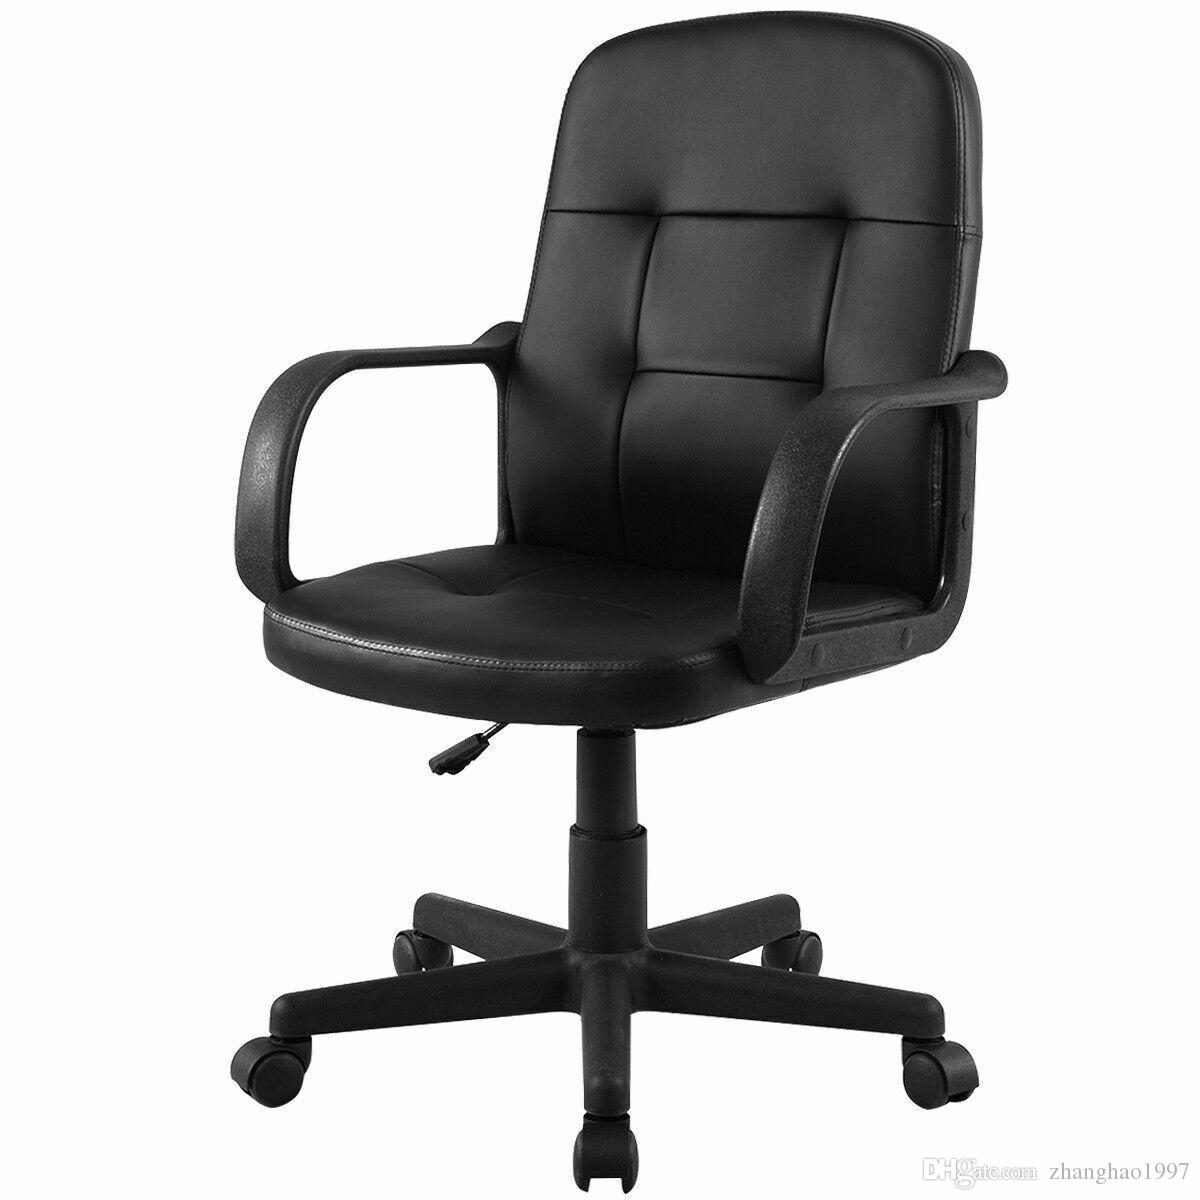 Brilliant 2019 Pu Leather Ergonomic Midback Executive Computer Best Desk Task Office Chair From Zhanghao1997 169 85 Dhgate Com Machost Co Dining Chair Design Ideas Machostcouk